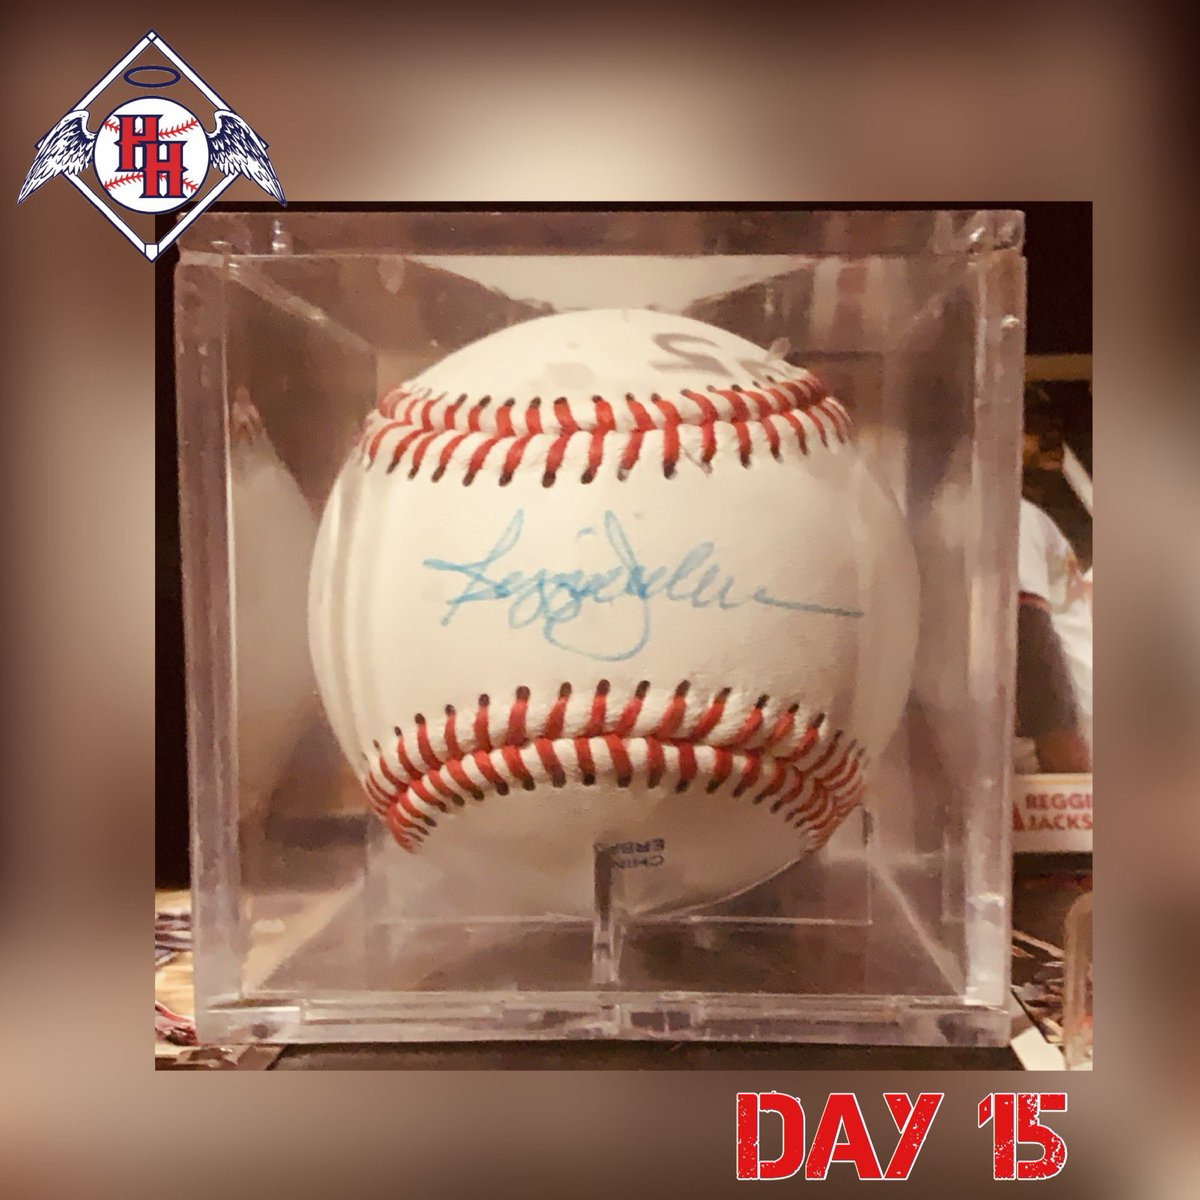 Day 15: Reggie Jackson autographed Baseball. ⚾️ Post a picture of your #Angels collection each day until baseball is back. #AngelsMemorabiliaChallenge #halohaven #angelsbaseball #anaheim #mroctober #reggie